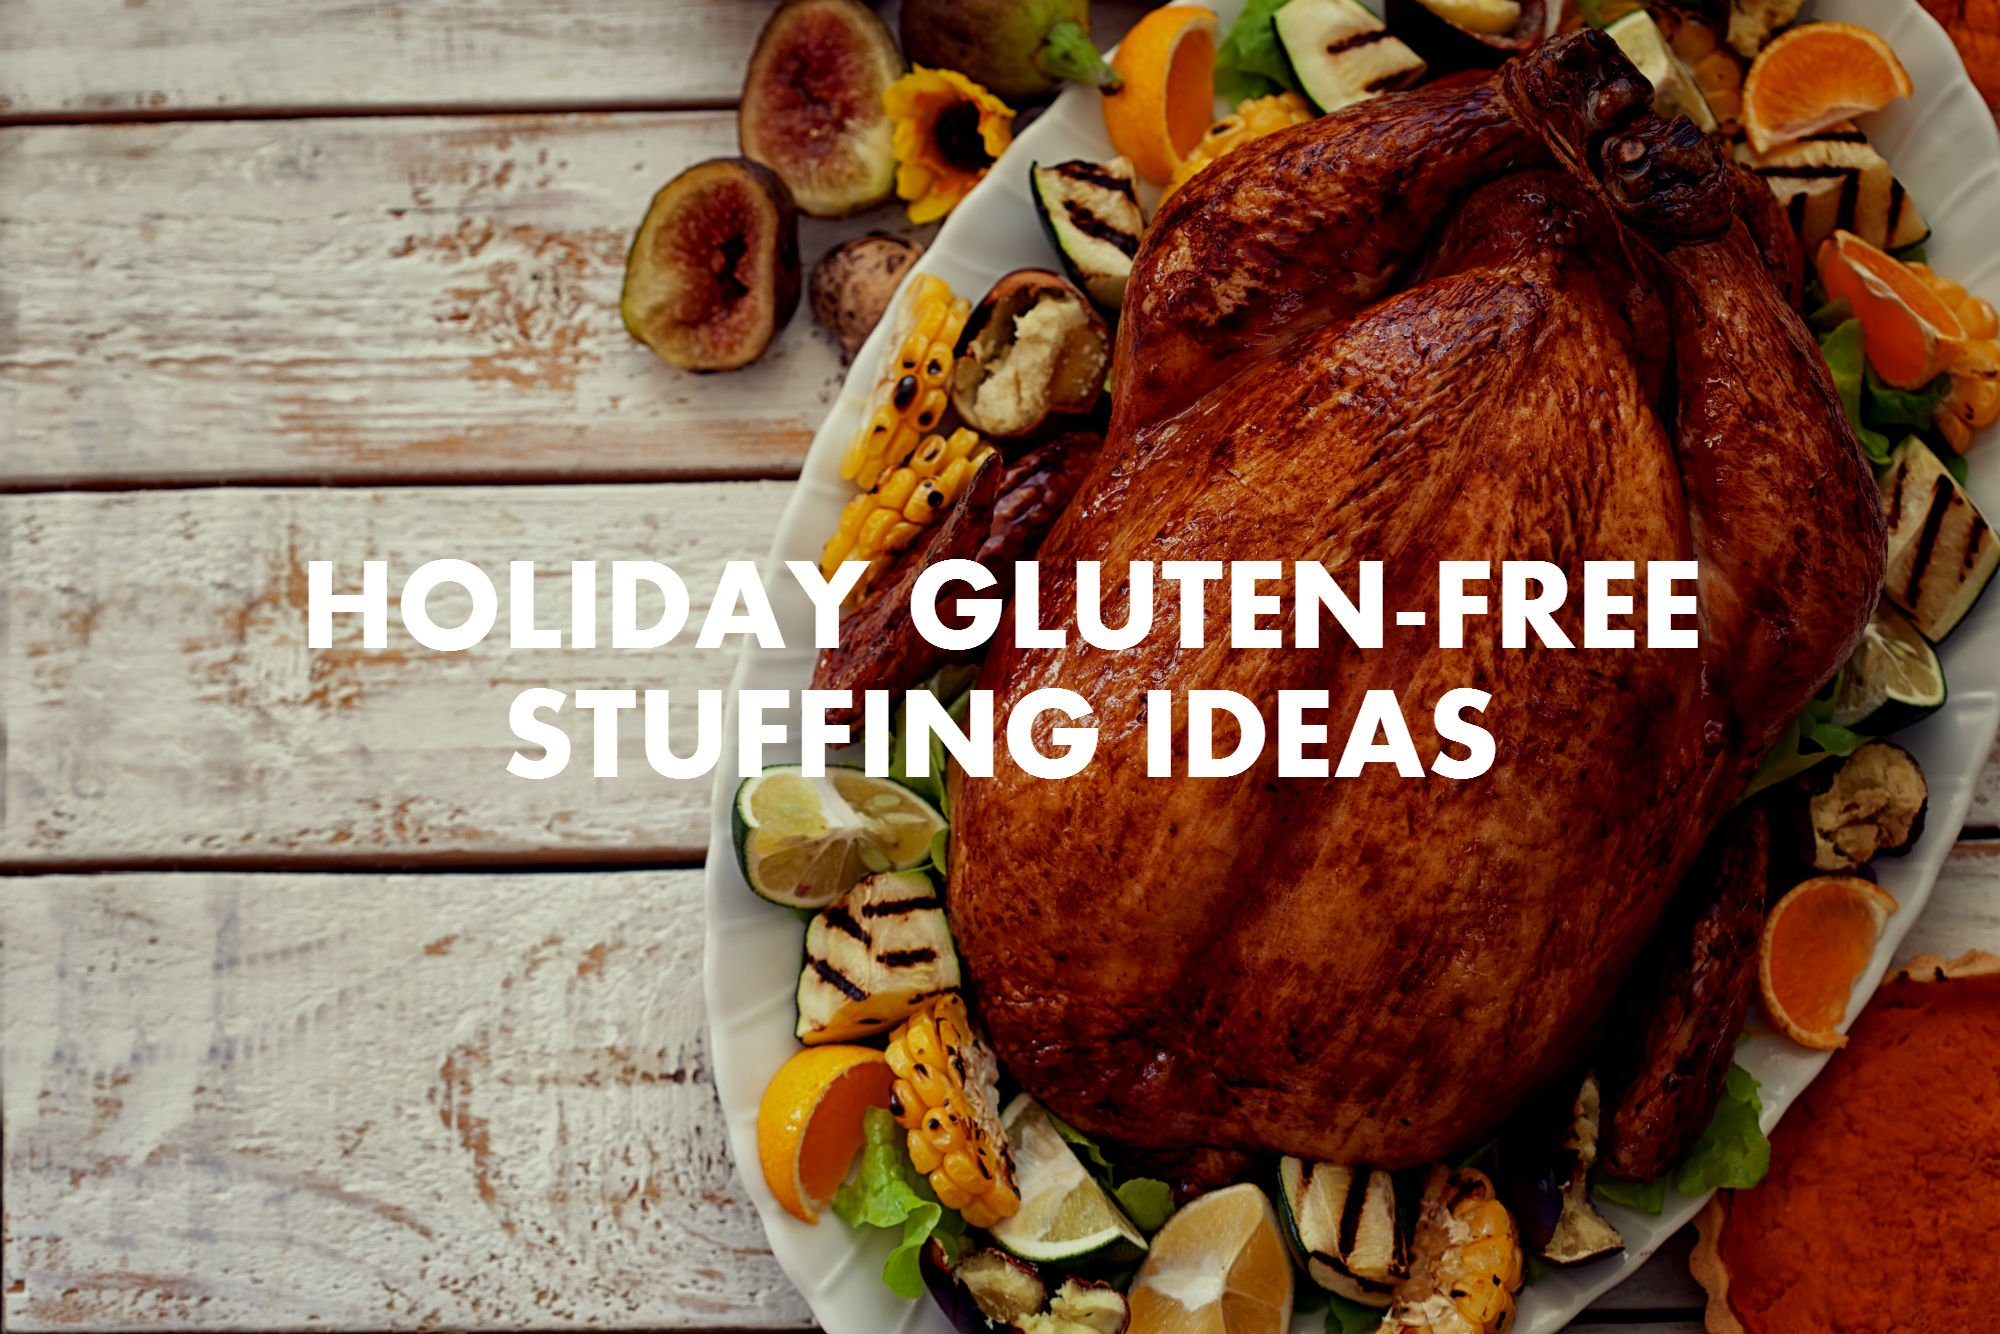 Holiday Gluten-free Stuffing Ideas